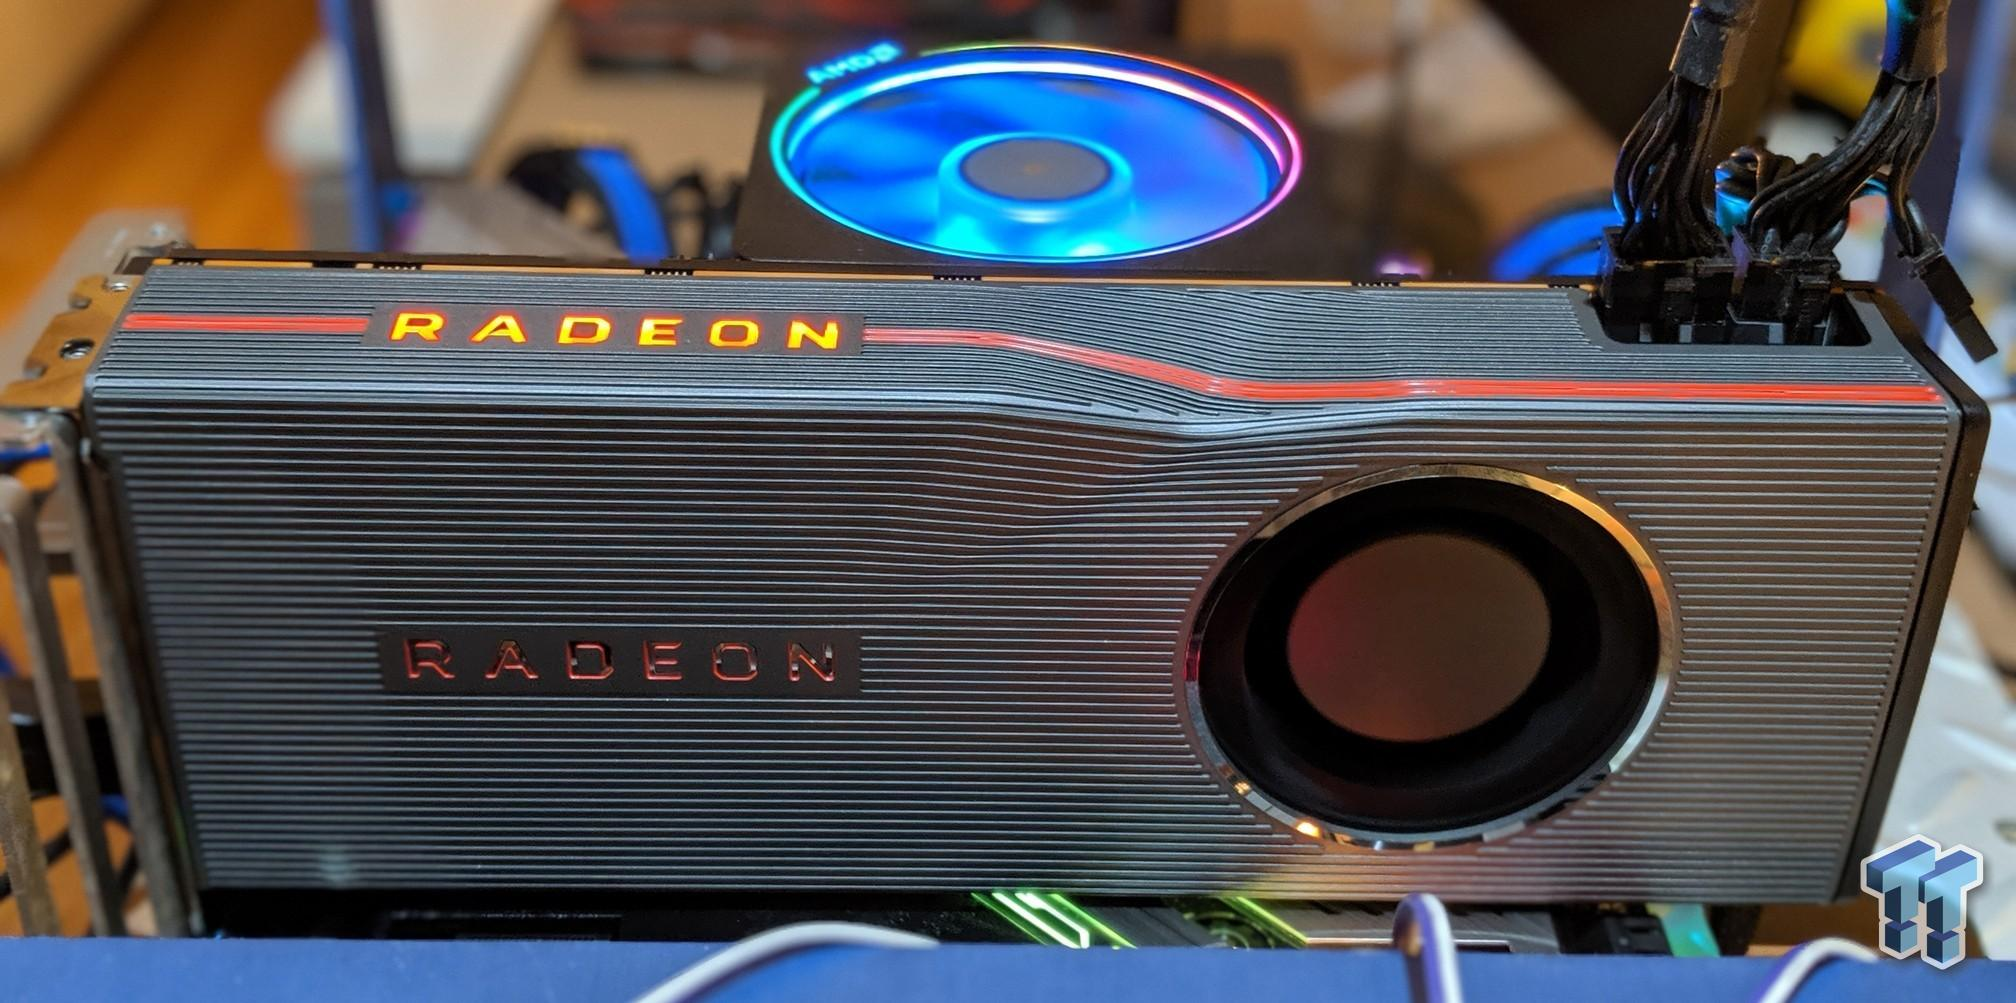 AMD Radeon RX 5700 XT/RX 5700: A Step In The Right Direction